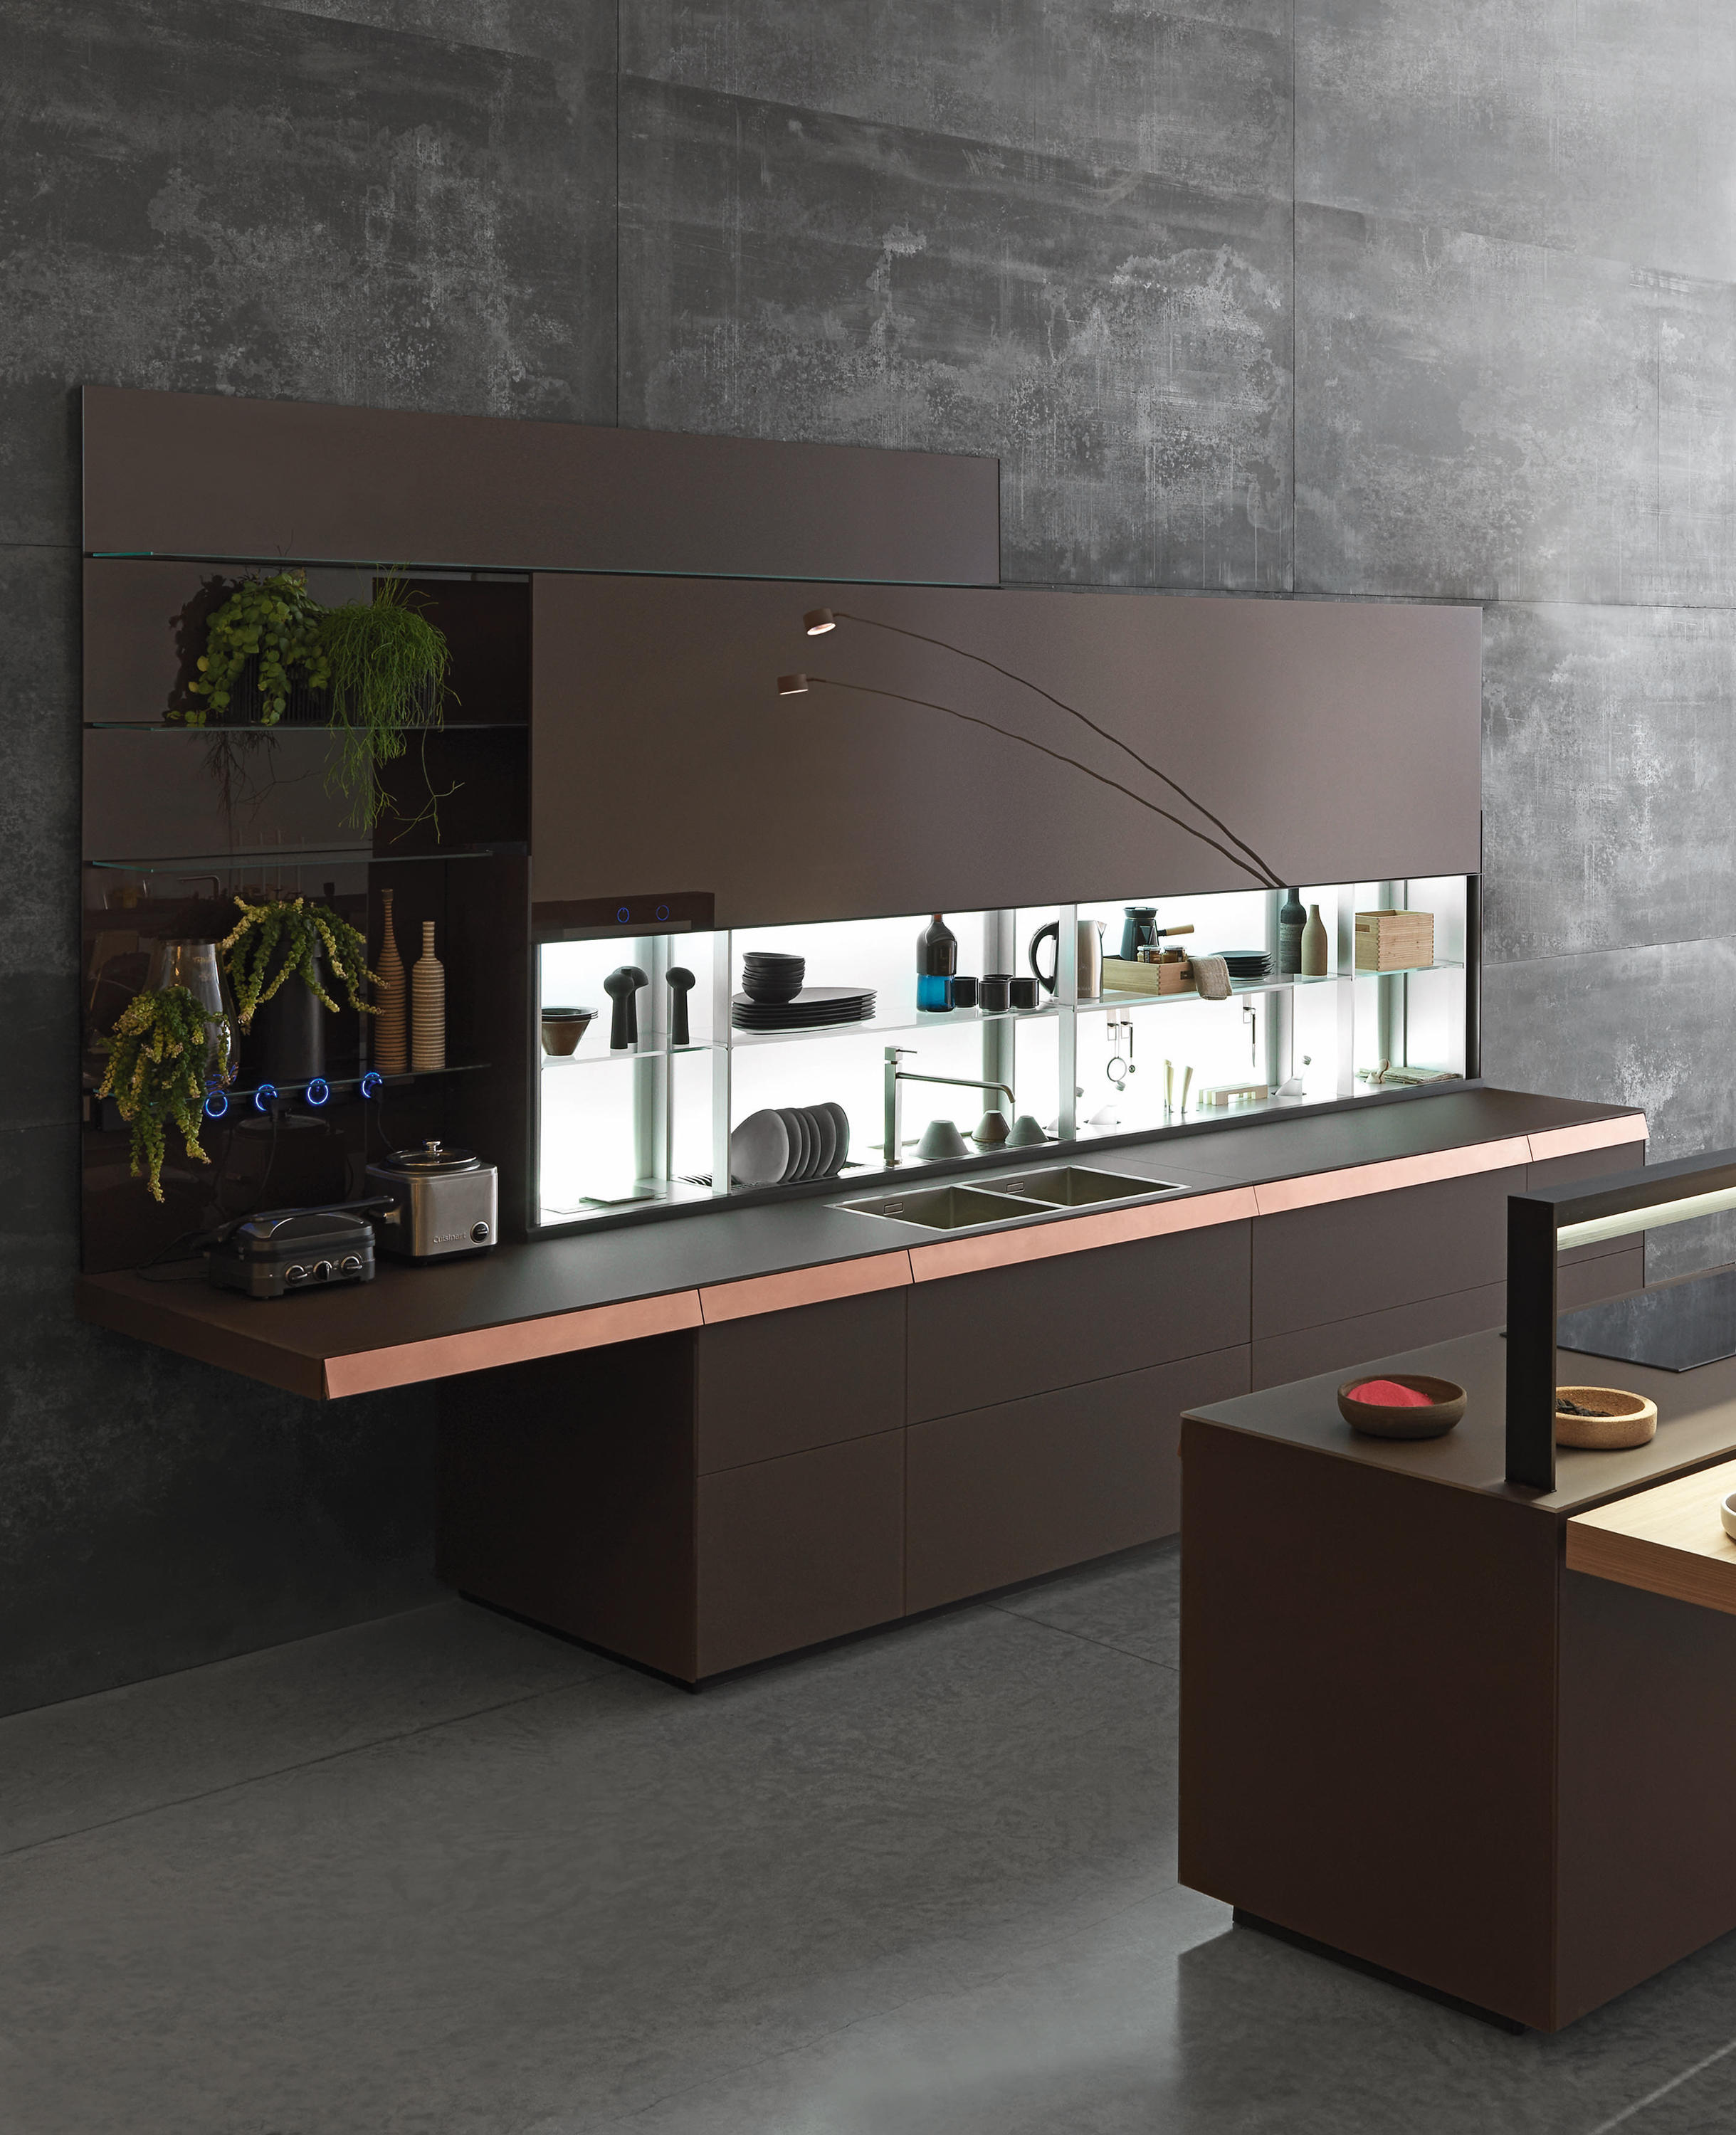 european kitchen designs 2016 genius loci with copper drawer fitted kitchens from 158